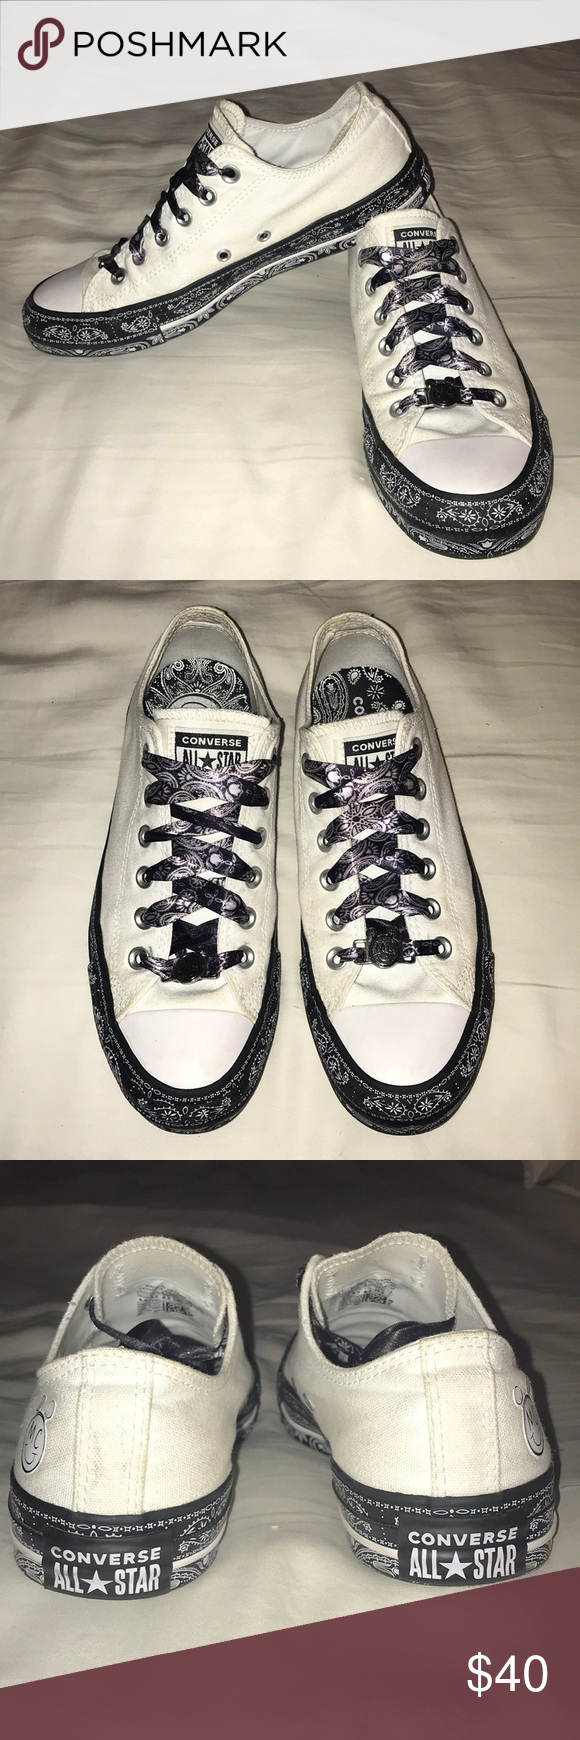 Converse X Miley Cyrus Chuck Taylors Miley Cyrus Smiley Face Branding At Heel Lace Closure With Metallic Laces Chuck Taylors Womens Shoes Sneakers Converse